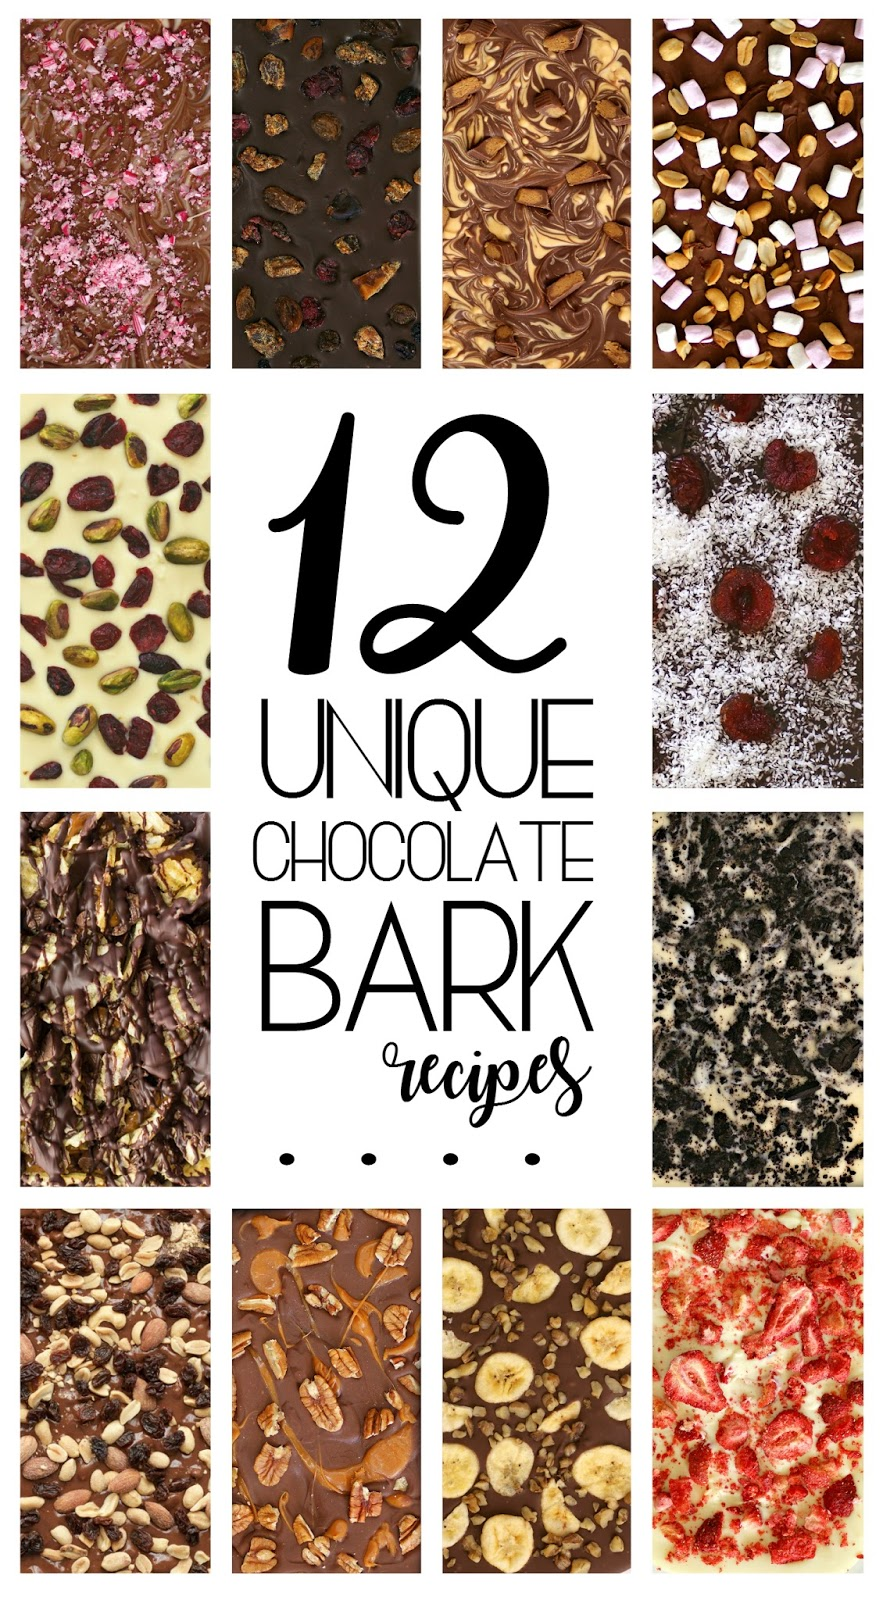 Southern In Law: 12 Unique Chocolate Bark Recipes for Christmas Gifting